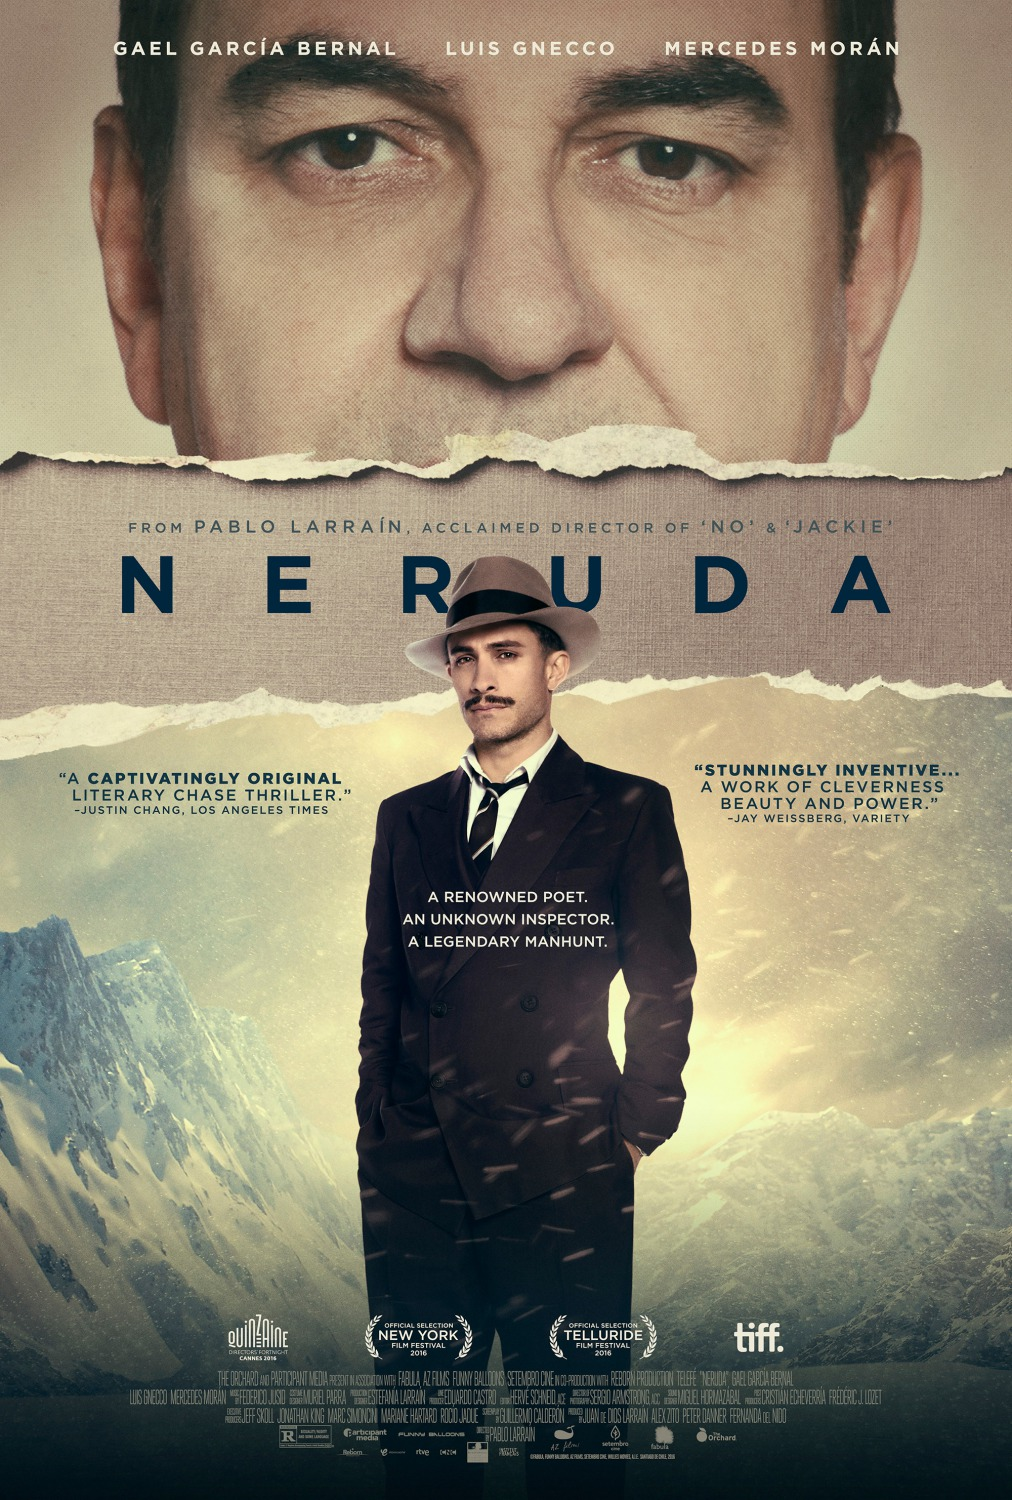 Movie poster for the film, Neruda